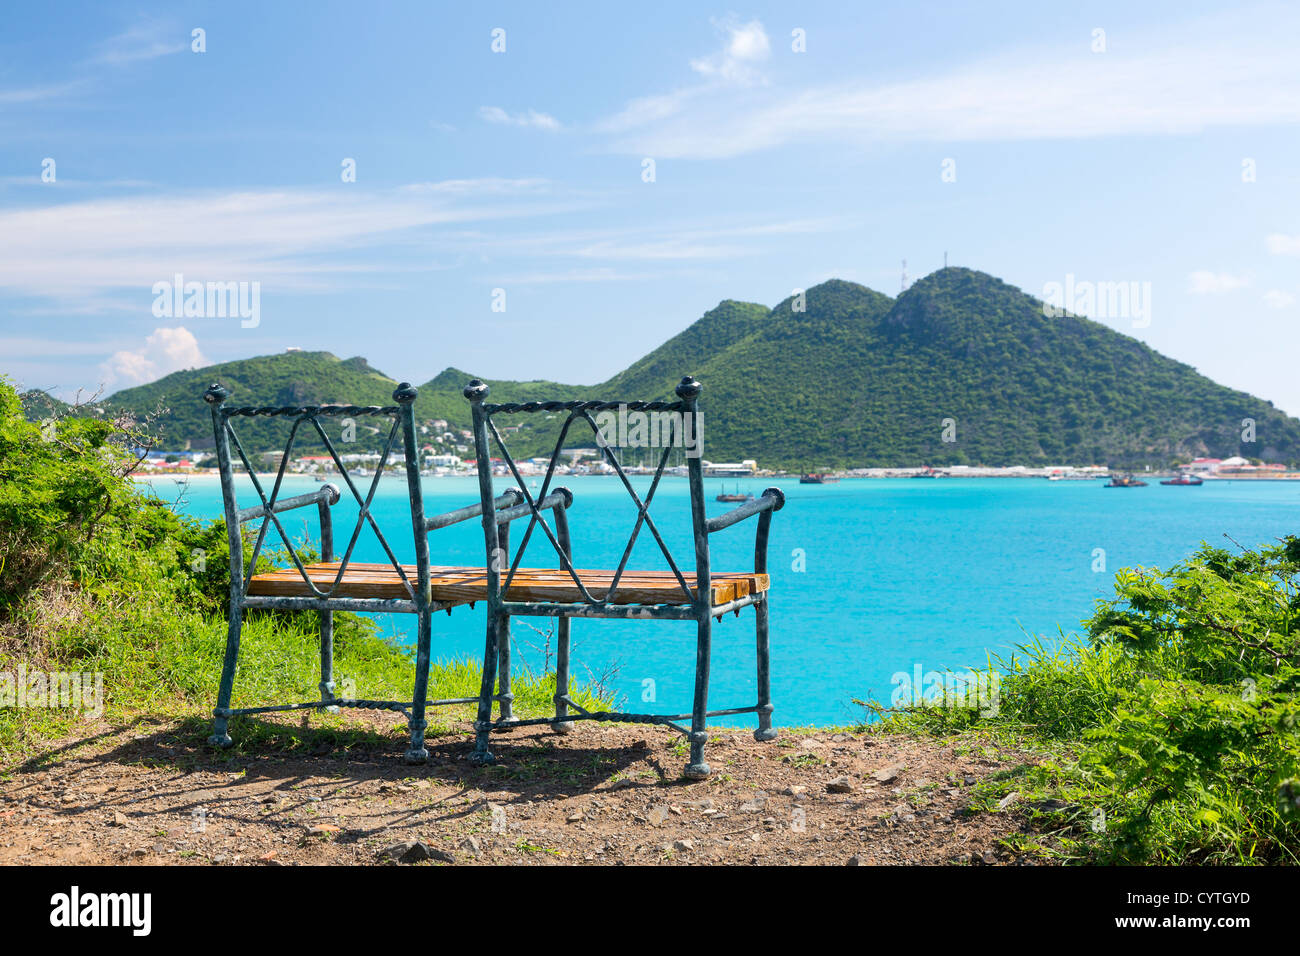 Seat at overlook viewpoint over Philipsburg in St Maarten / St Martin in the Caribbean - Stock Image